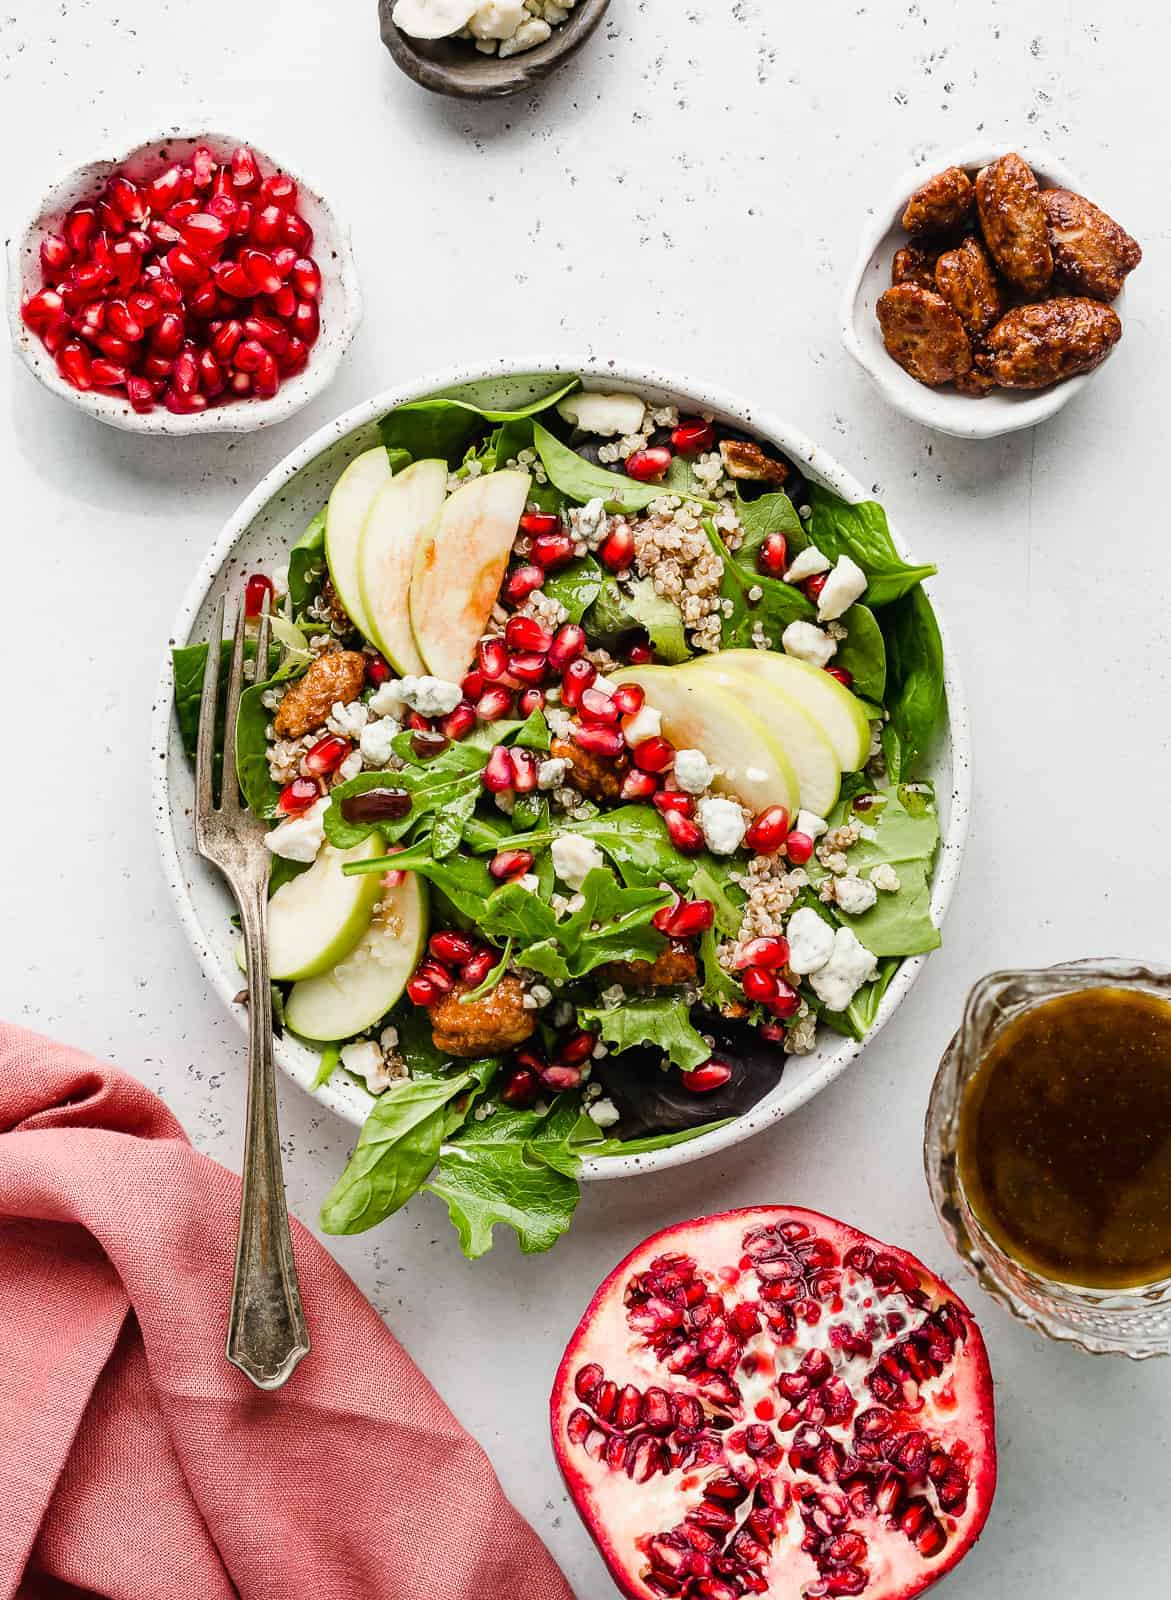 A plate of Pomegranate Salad topped with nuts, cheese, pomegranate arils, and chopped apples.